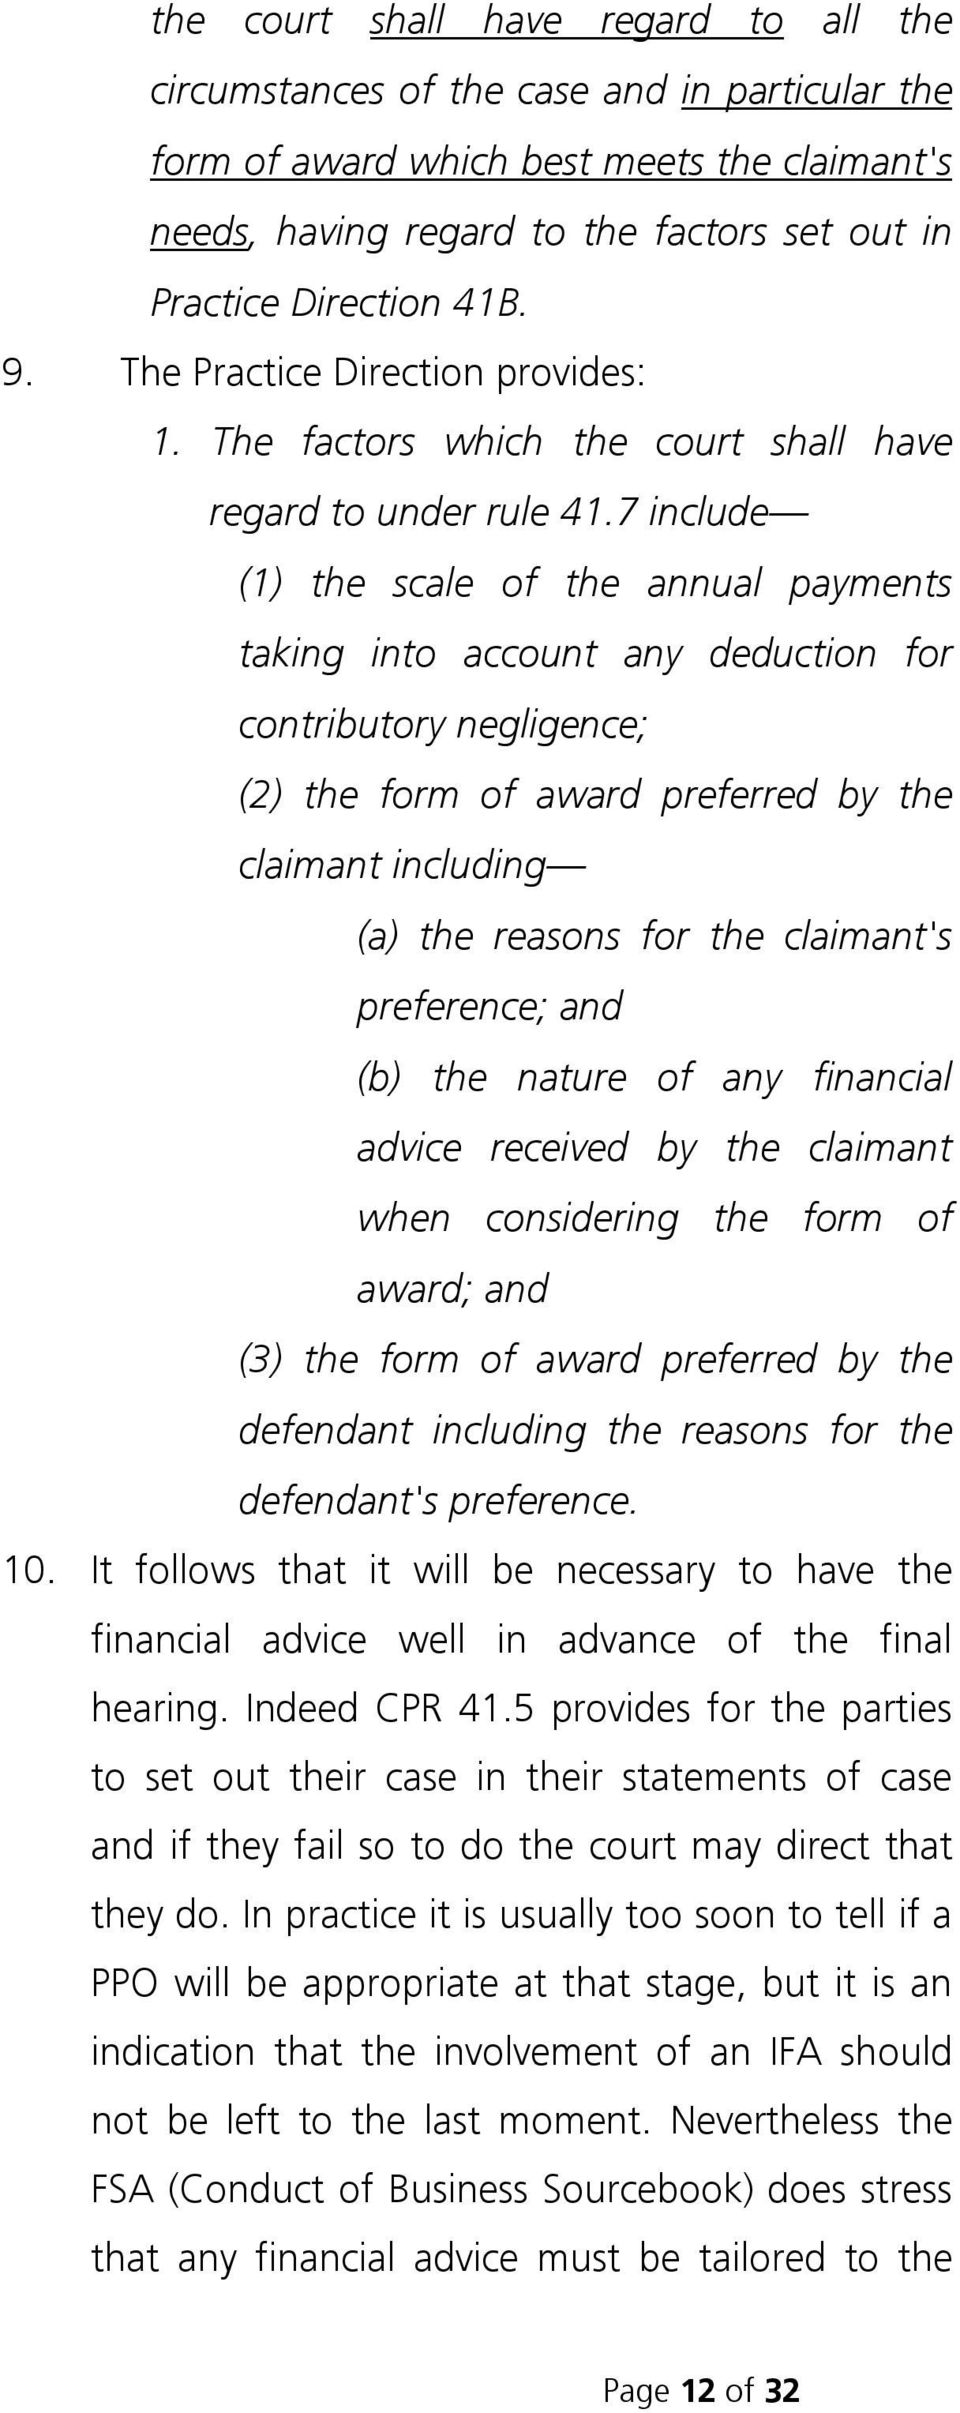 7 include (1) the scale of the annual payments taking into account any deduction for contributory negligence; (2) the form of award preferred by the claimant including (a) the reasons for the